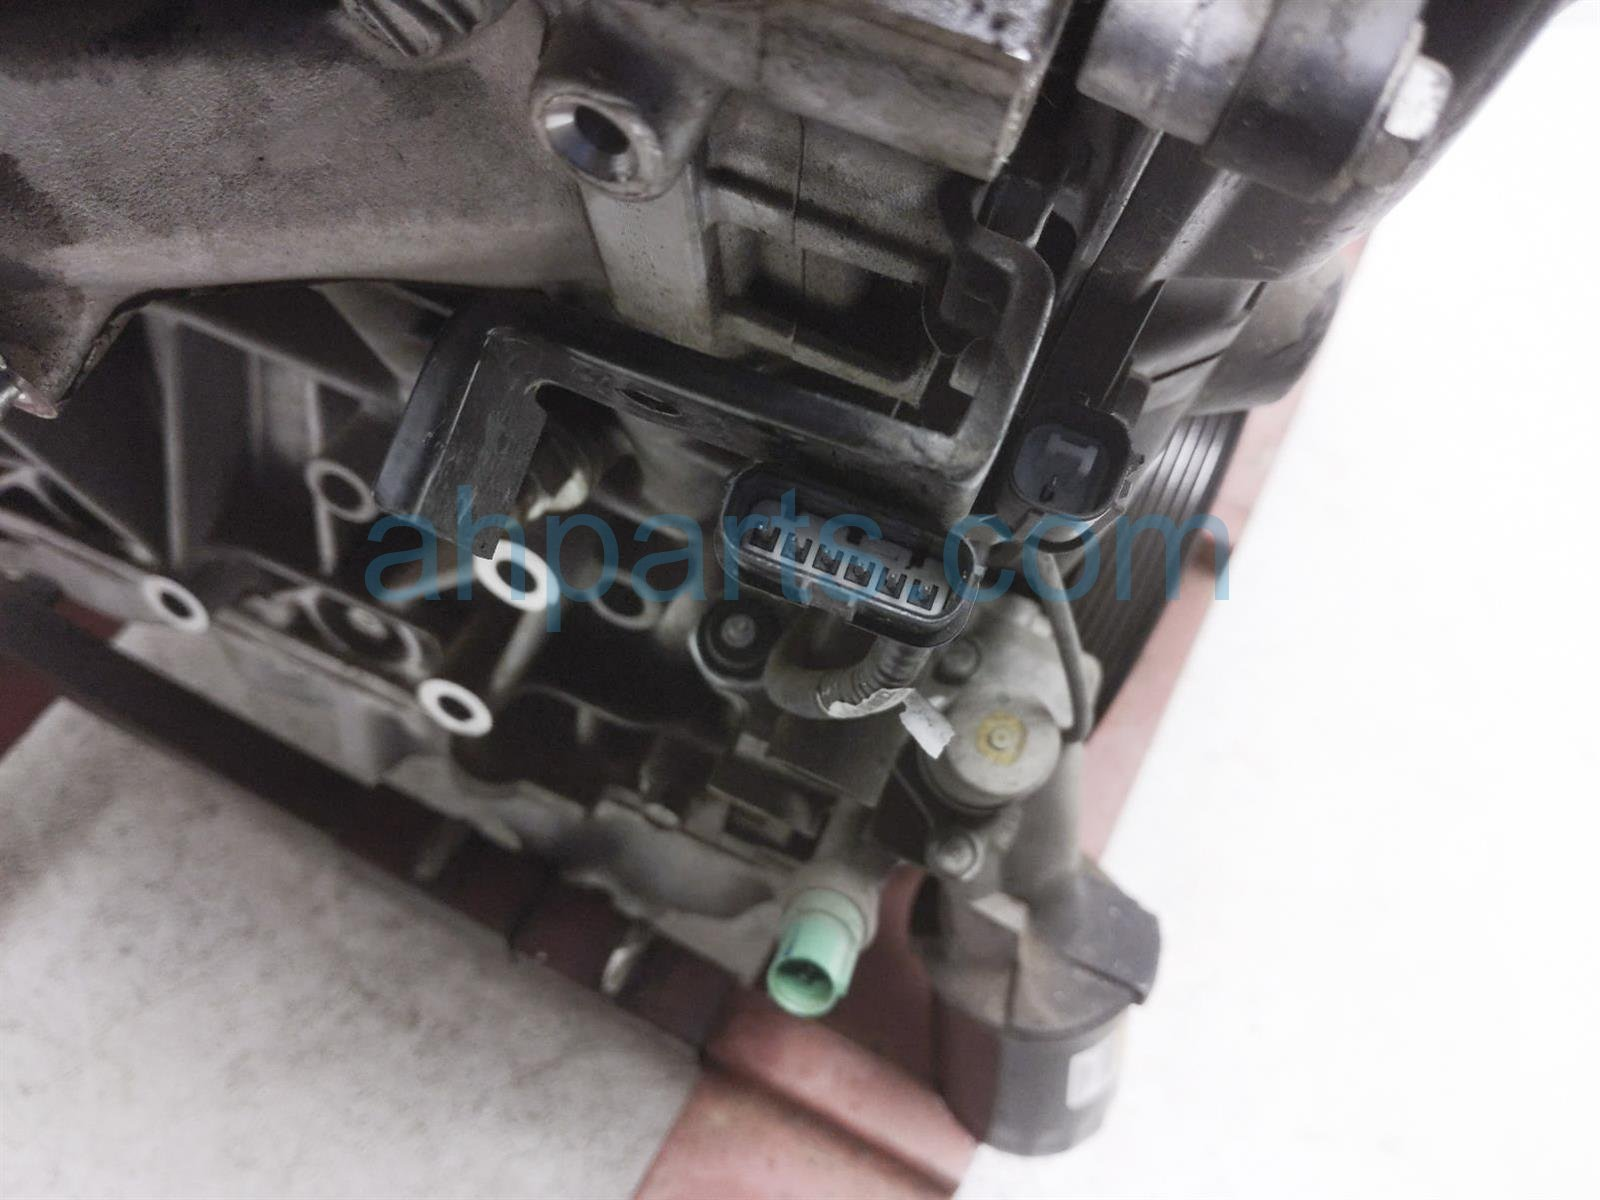 2007 Honda Accord Motor / Engine = 152k Miles 10005 RCB A00 Replacement